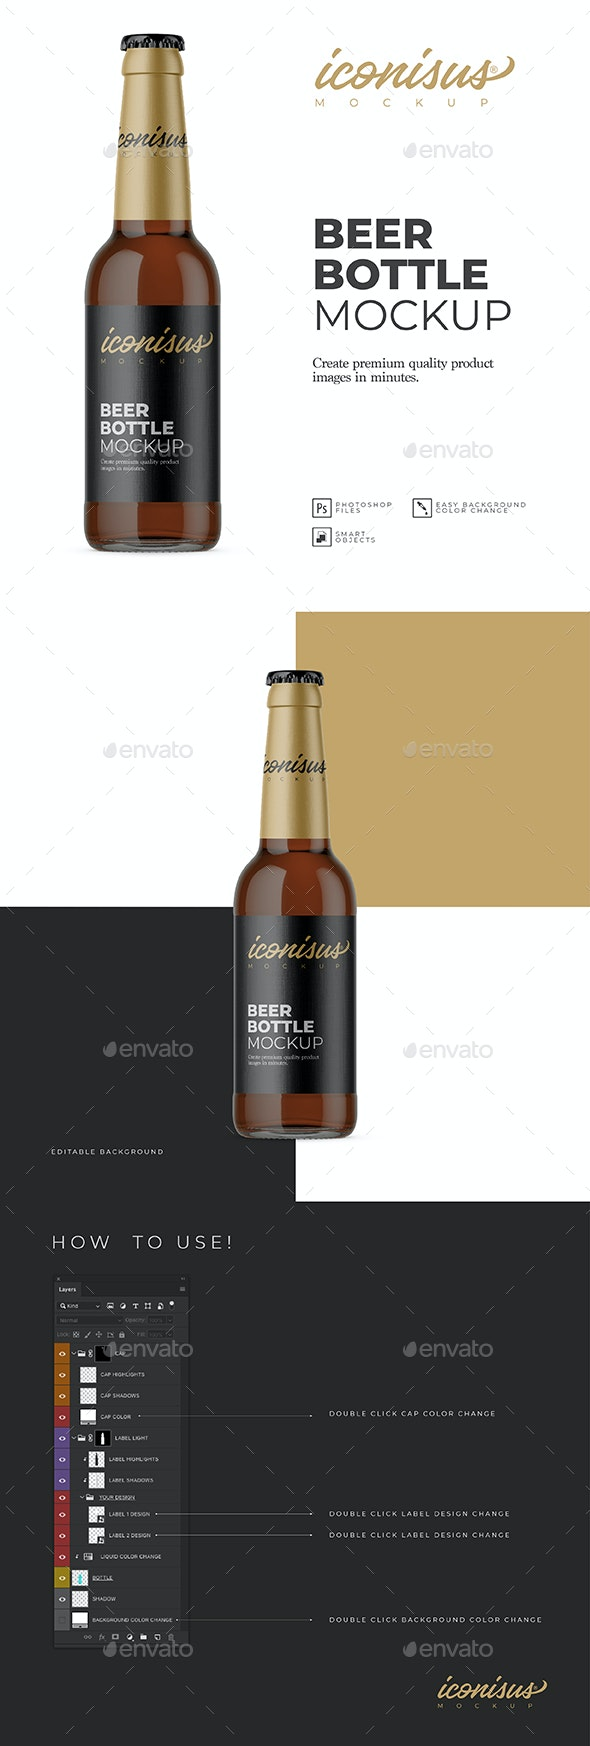 Beer Bottle Mockup Template - Food and Drink Packaging